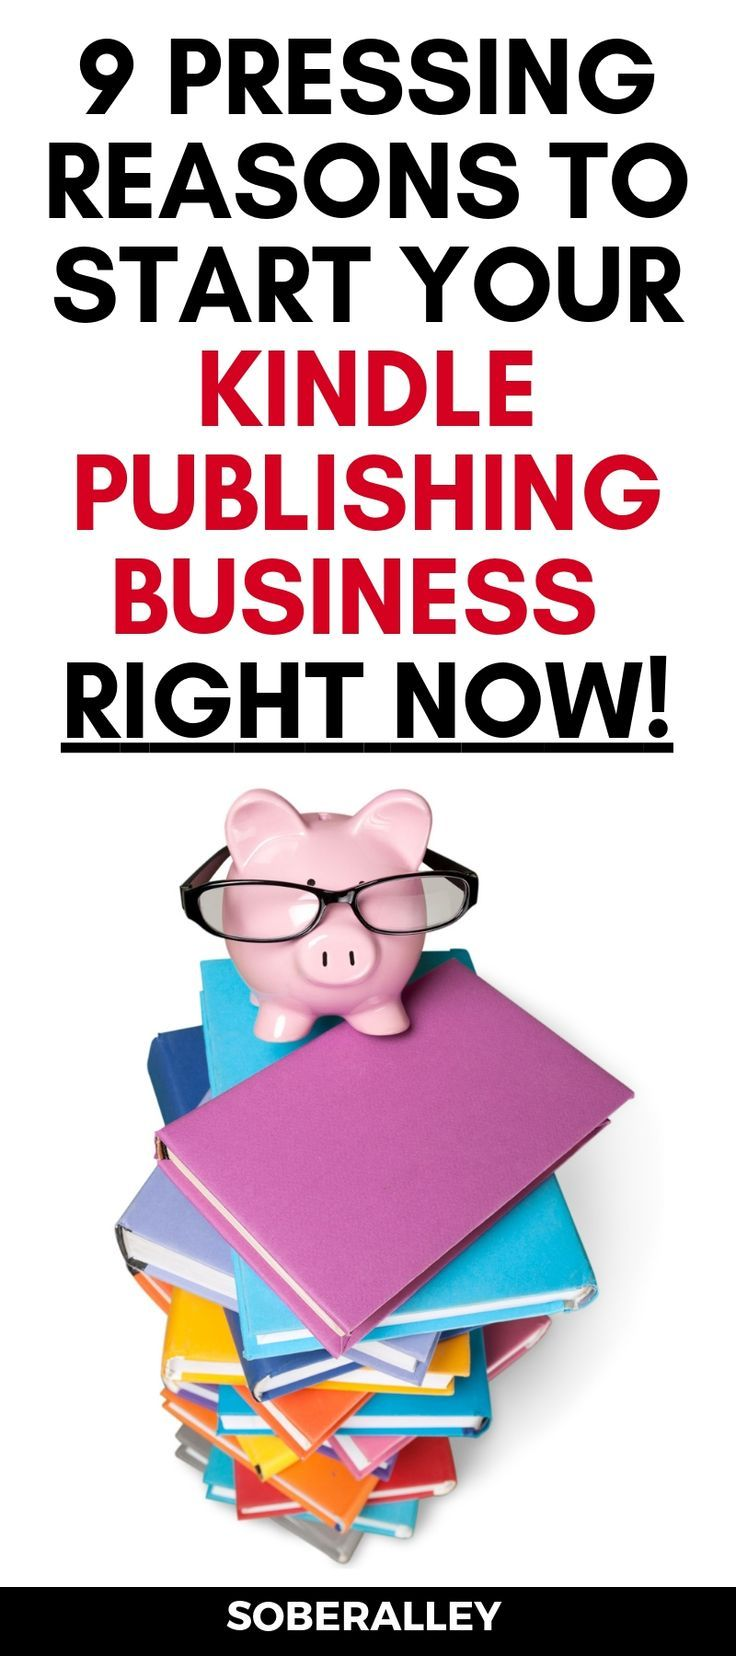 7 Reasons Why Kindle Publishing Gets Harder Over Time